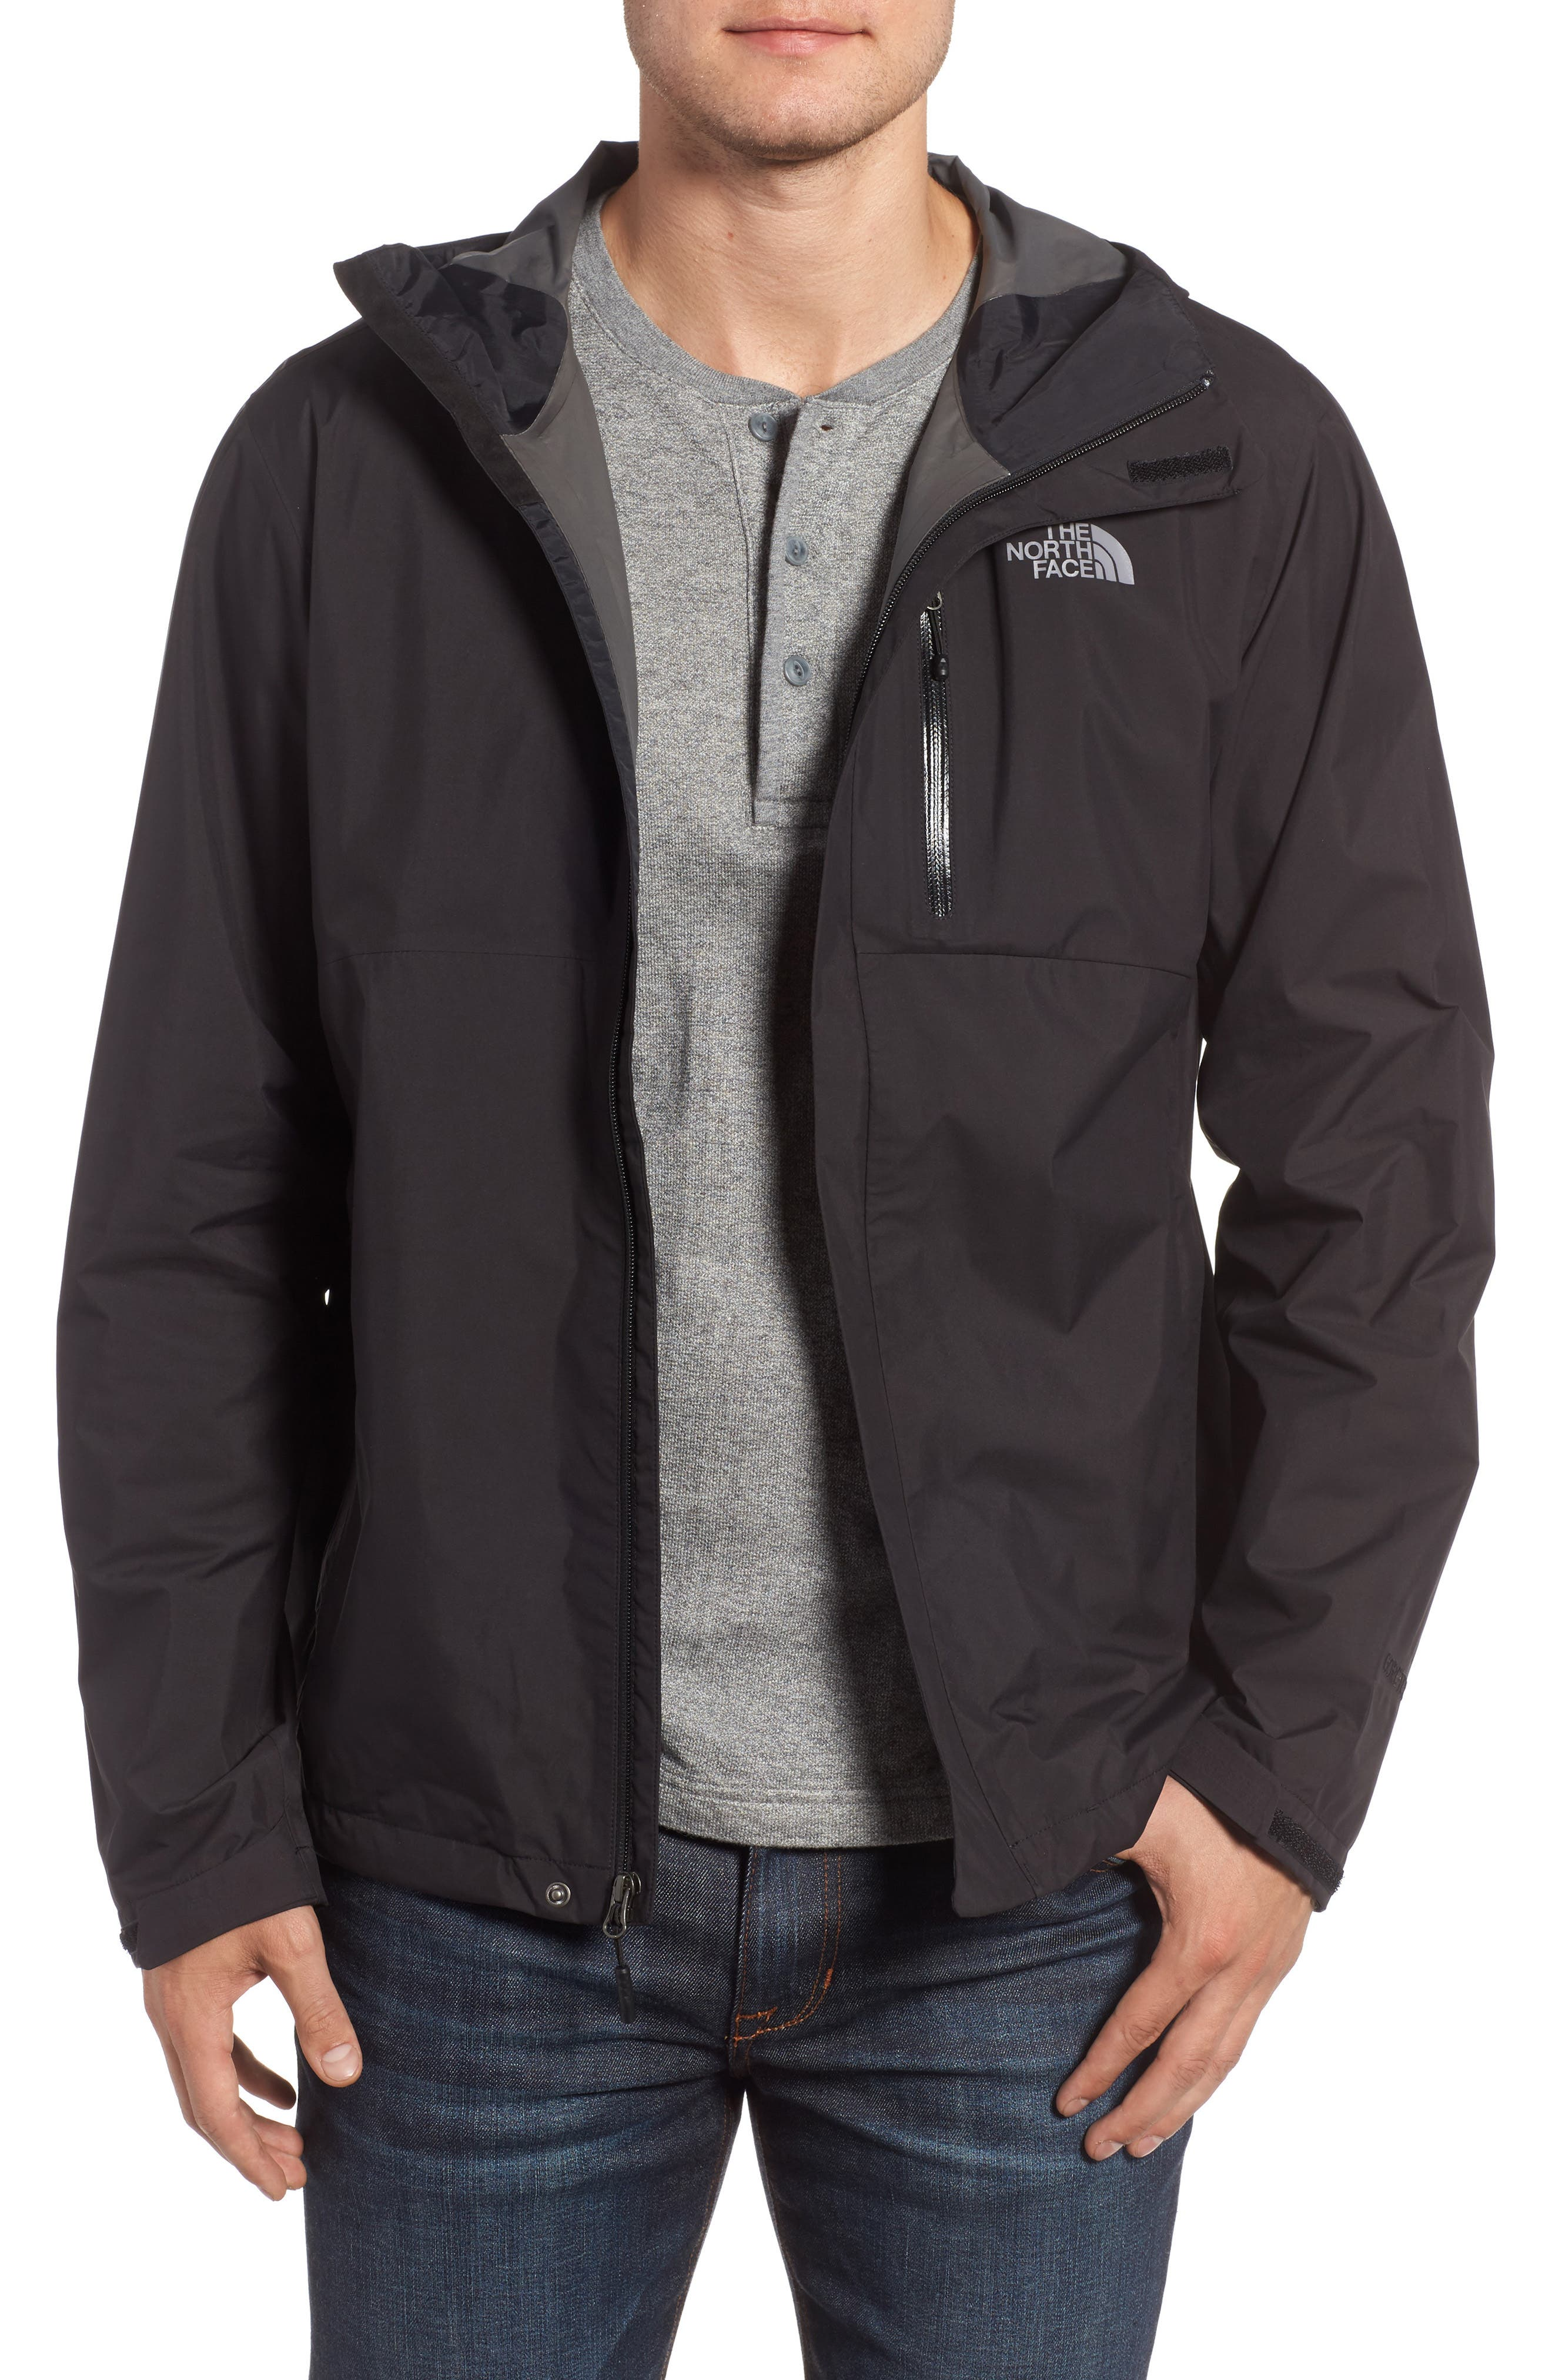 The North Face Dryzzle Gore-Tex® PacLite Hooded Jacket